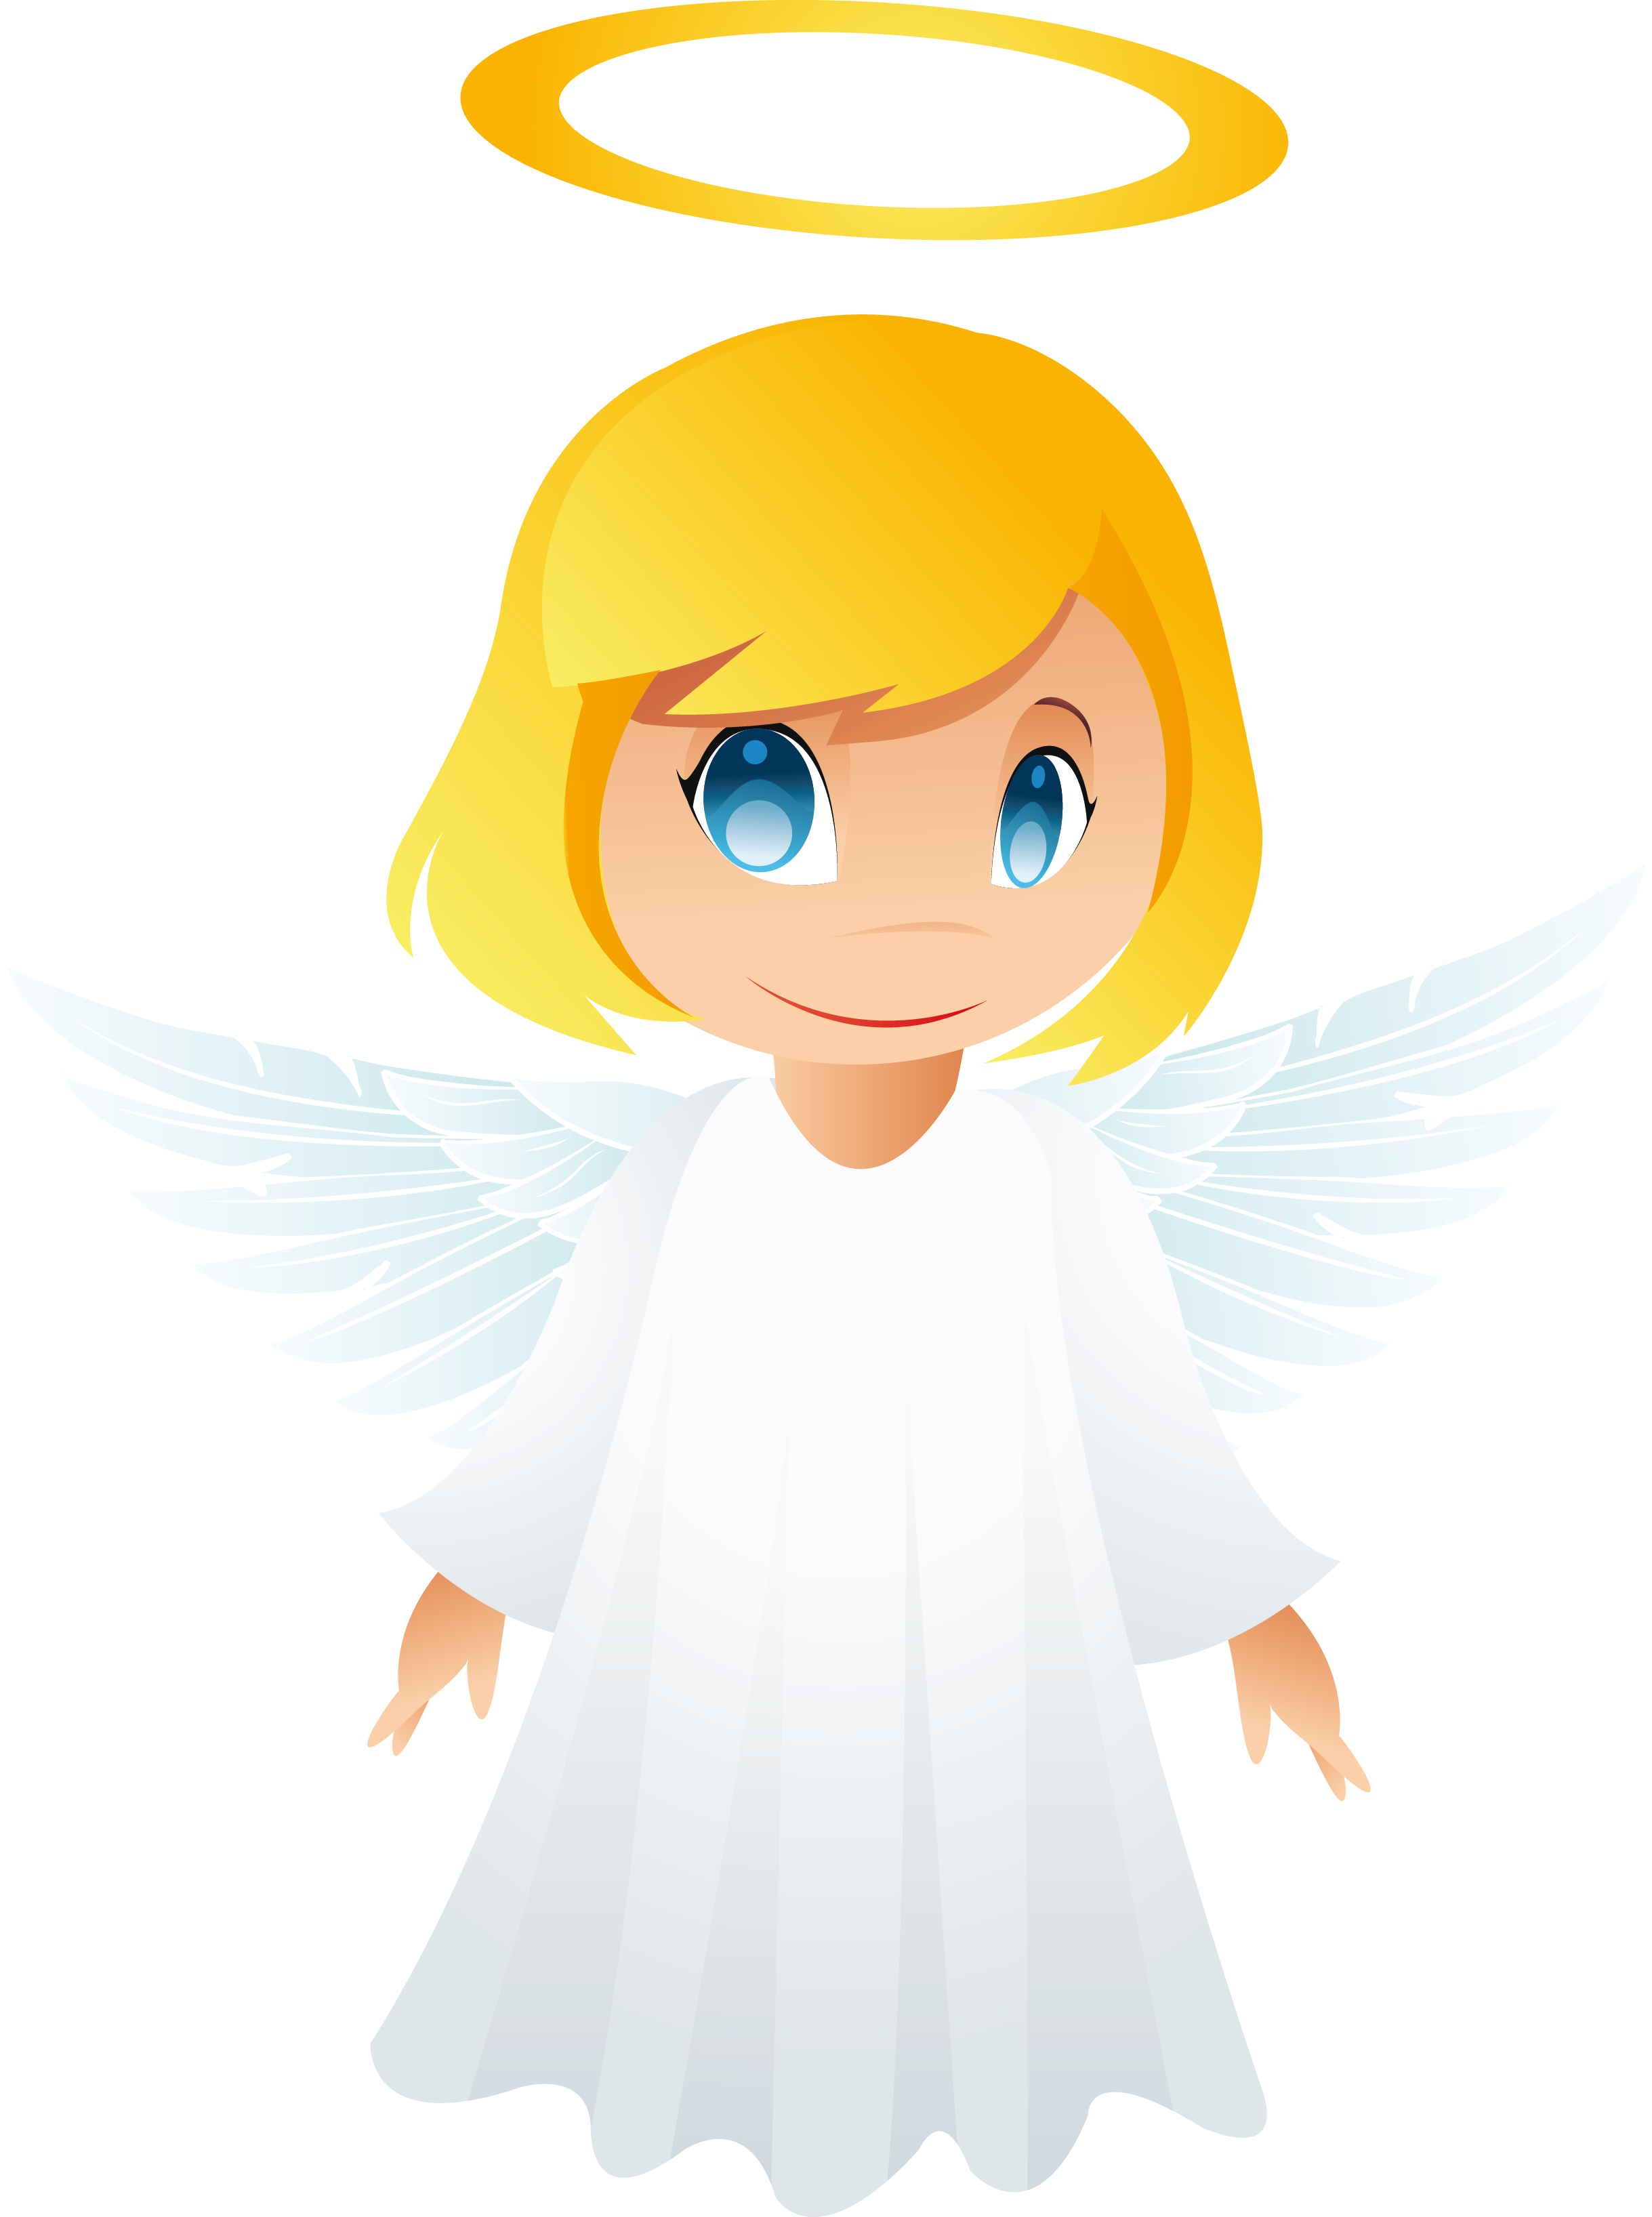 Angel clipart free graphics of cherubs a-Angel clipart free graphics of cherubs and angels the cliparts-1